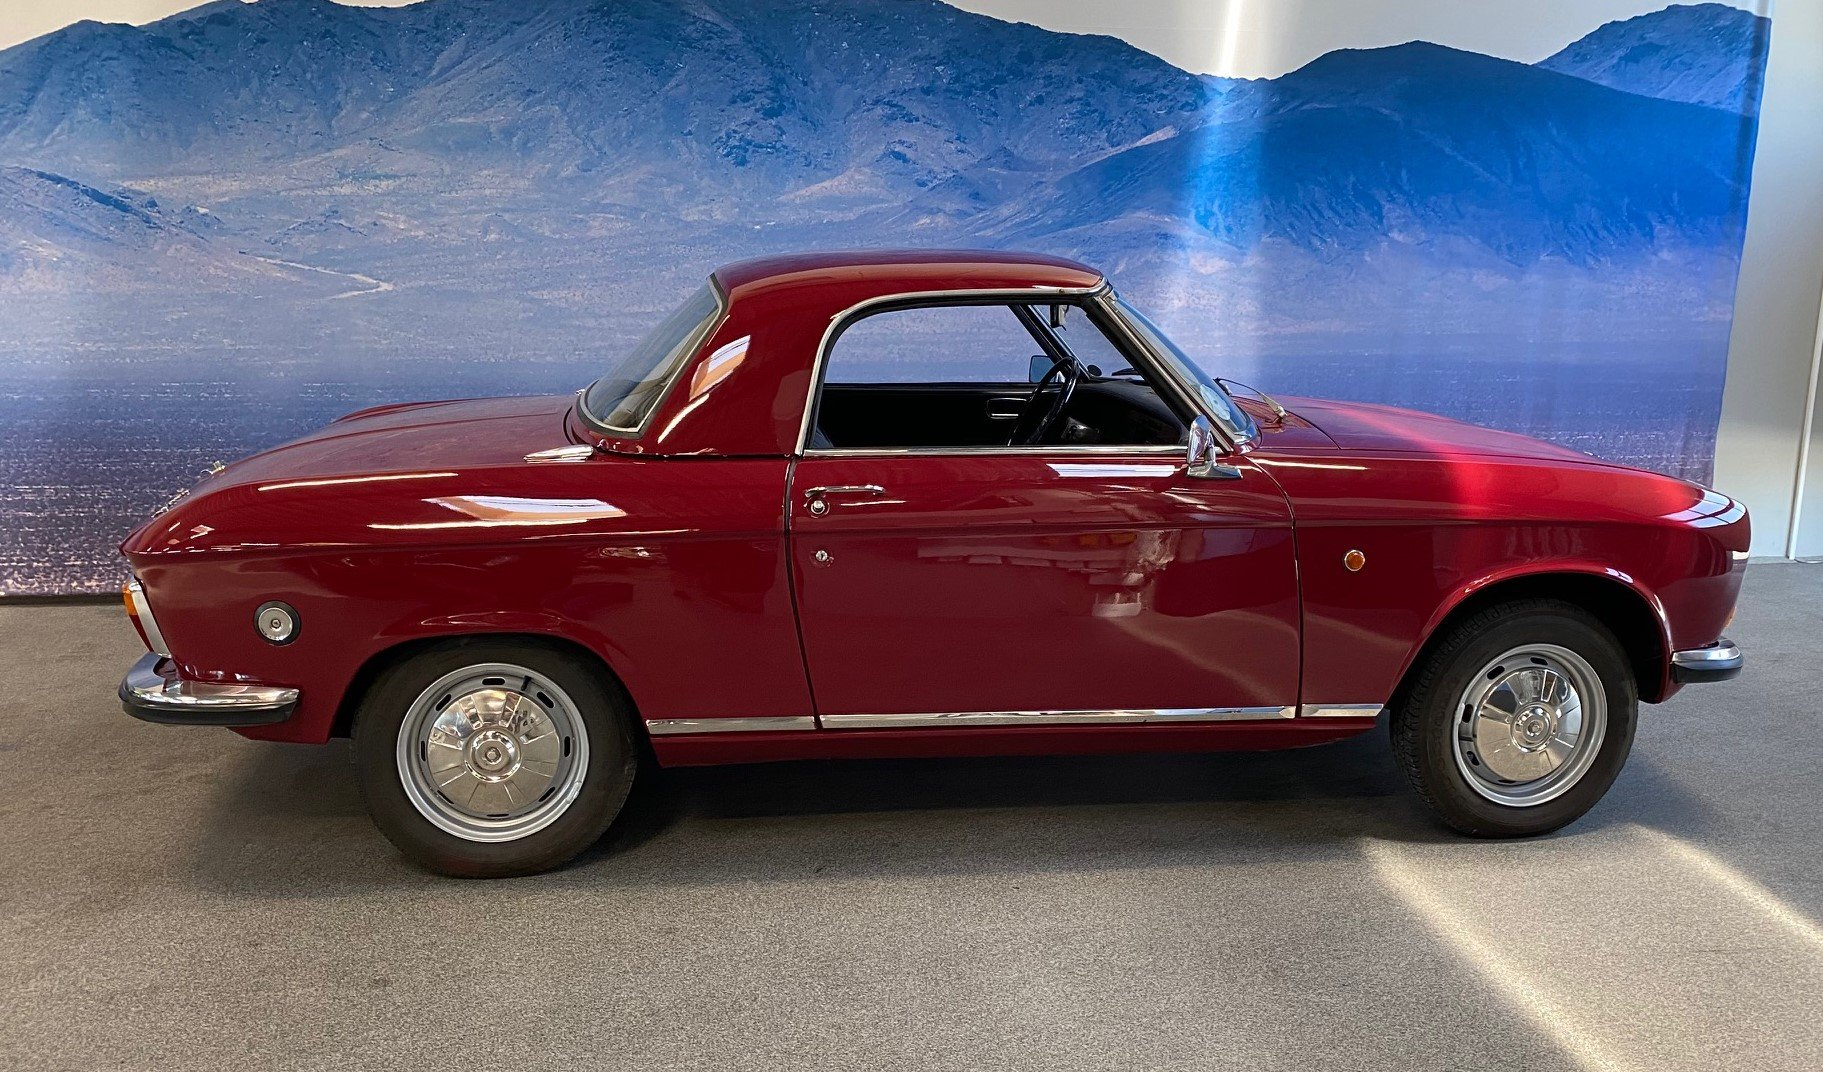 1972 Peugeot 304 1,3 Roadster  For Sale (picture 6 of 6)